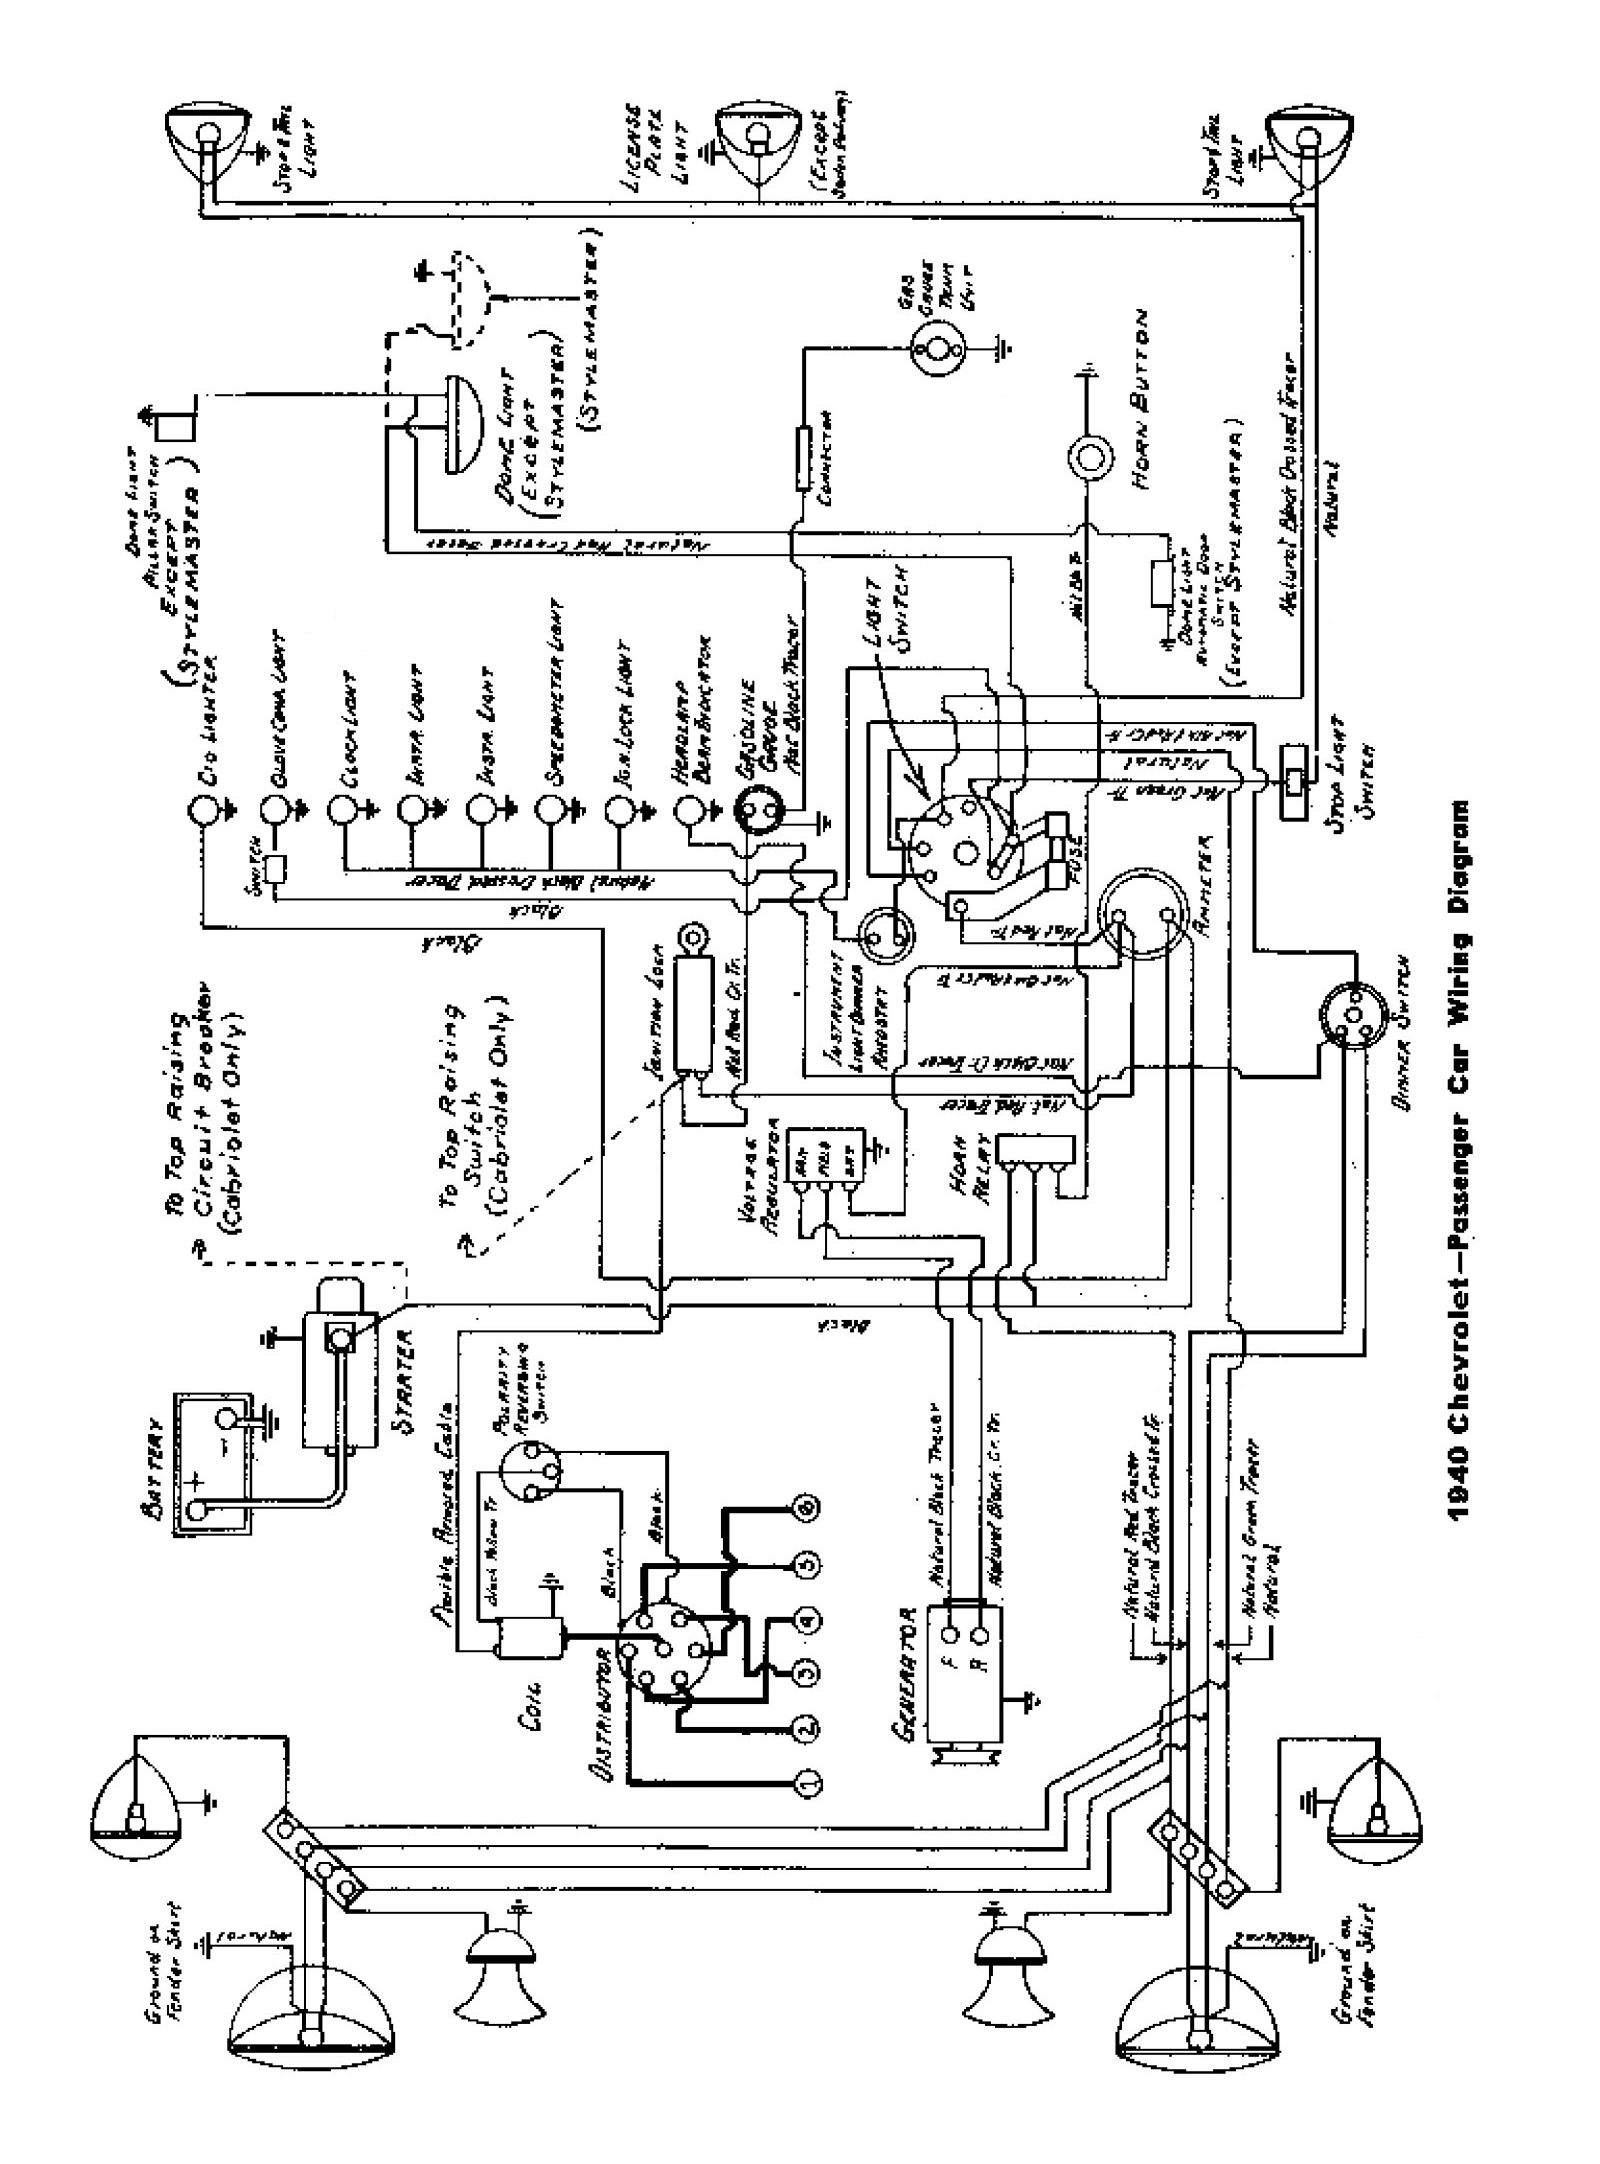 Chevy Wiring Diagrams Panel From Tail Light Diagram Lights Fuse To 1975 1940 Passenger Car